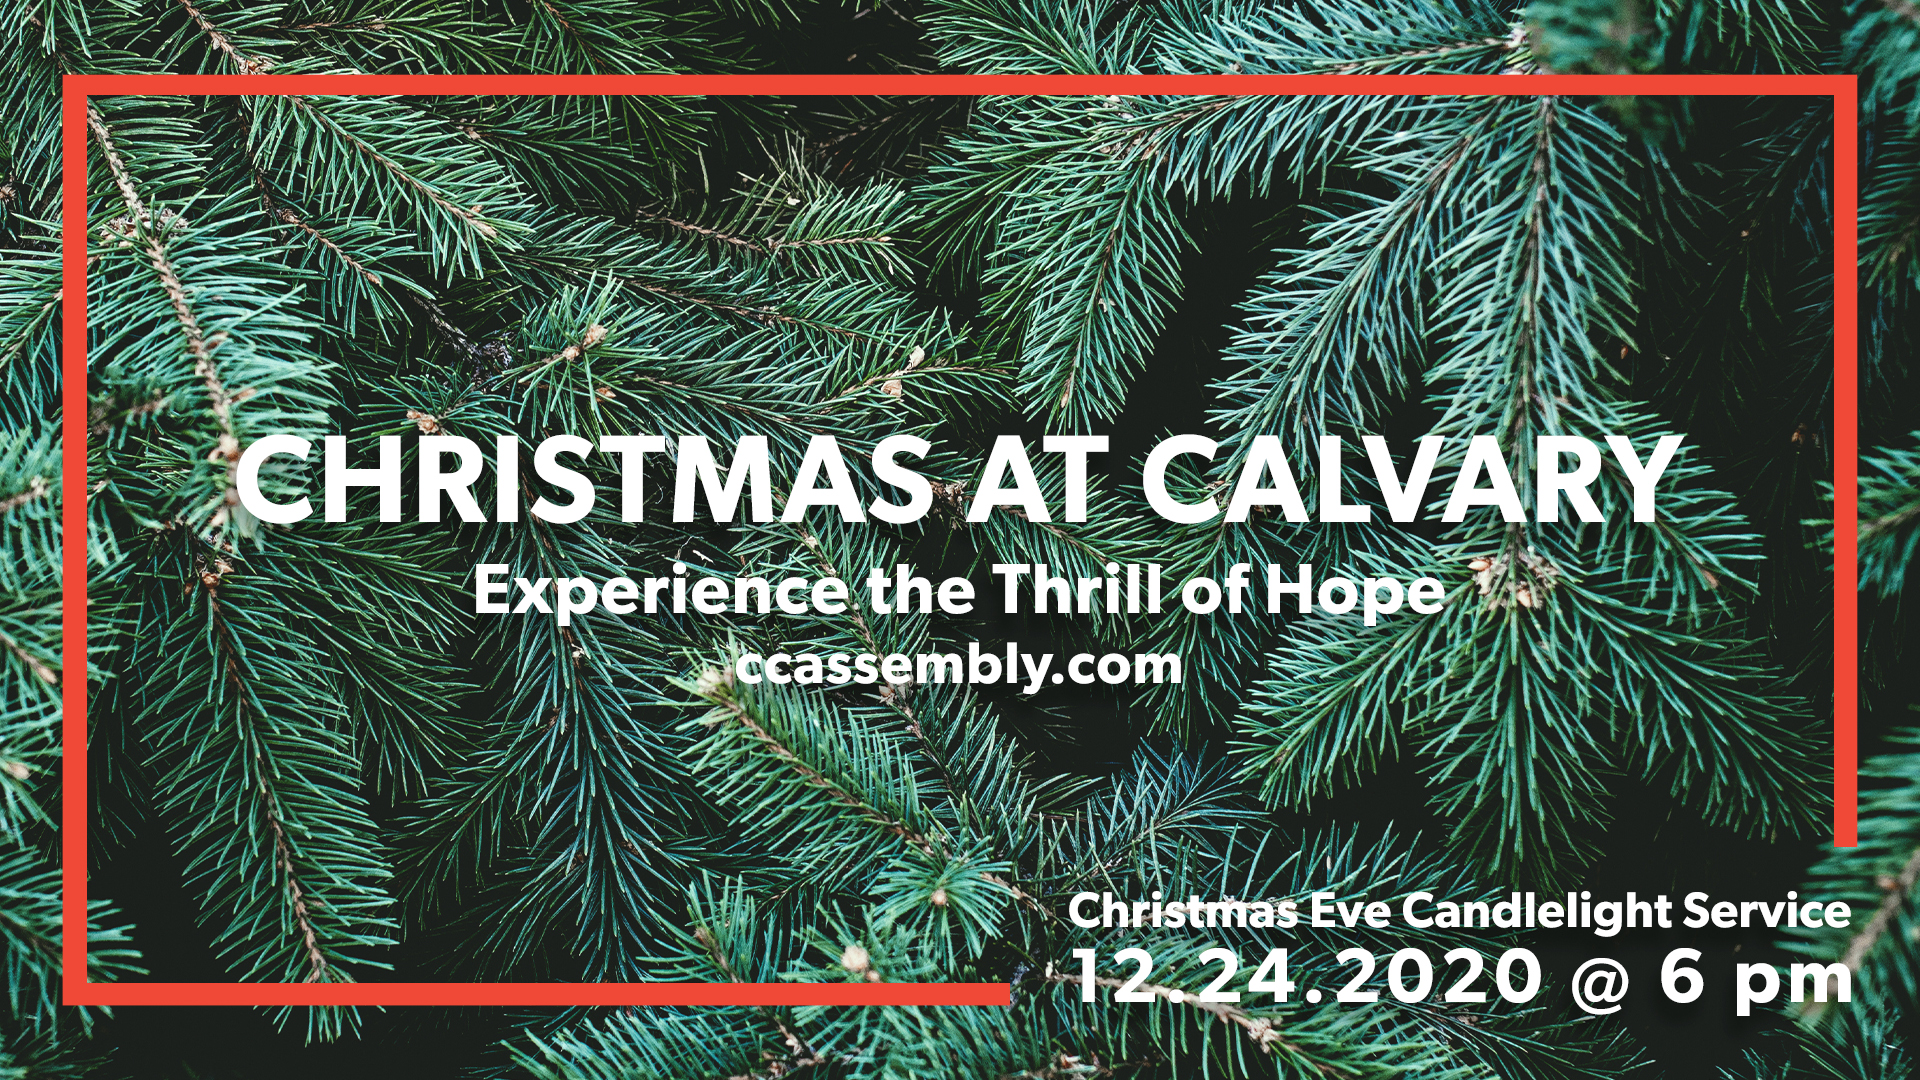 Christmas Eve At Calvary: The Thrill of Hope